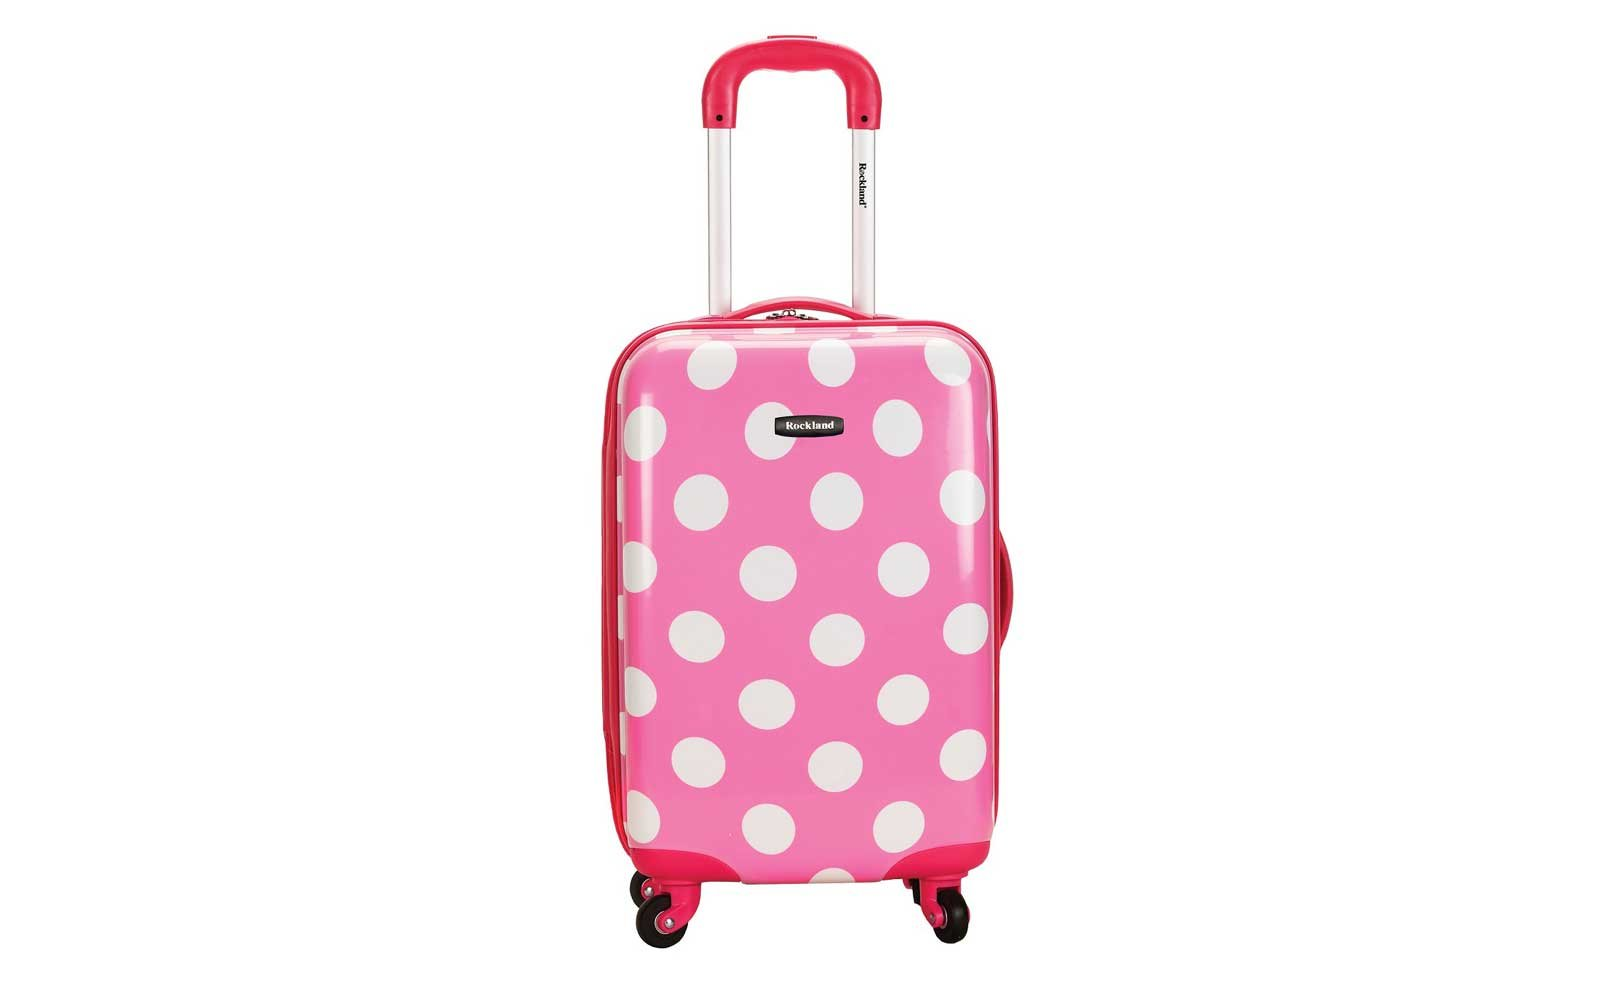 Rockland Reno Polycarbonate Carry-On in white polka dots and pink